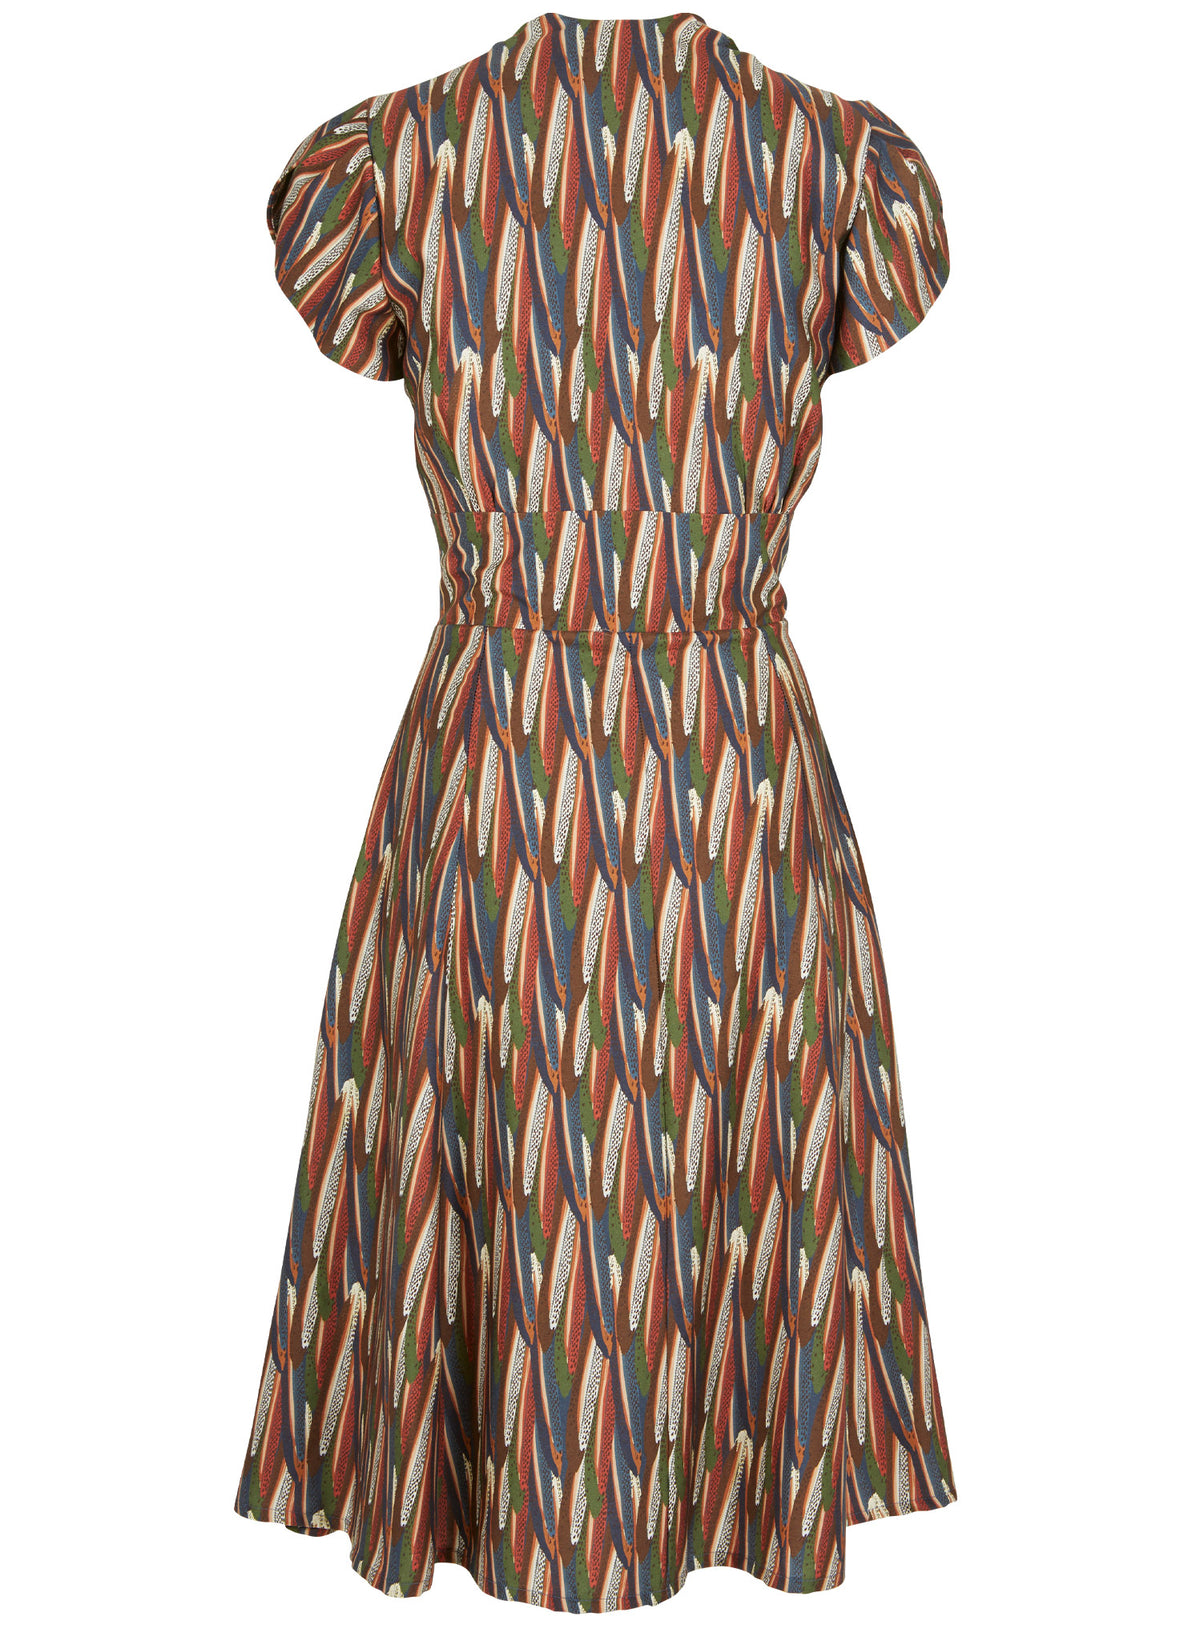 PALAVA - Rita Dress (Multi Feather / Navy Marbled Feather)